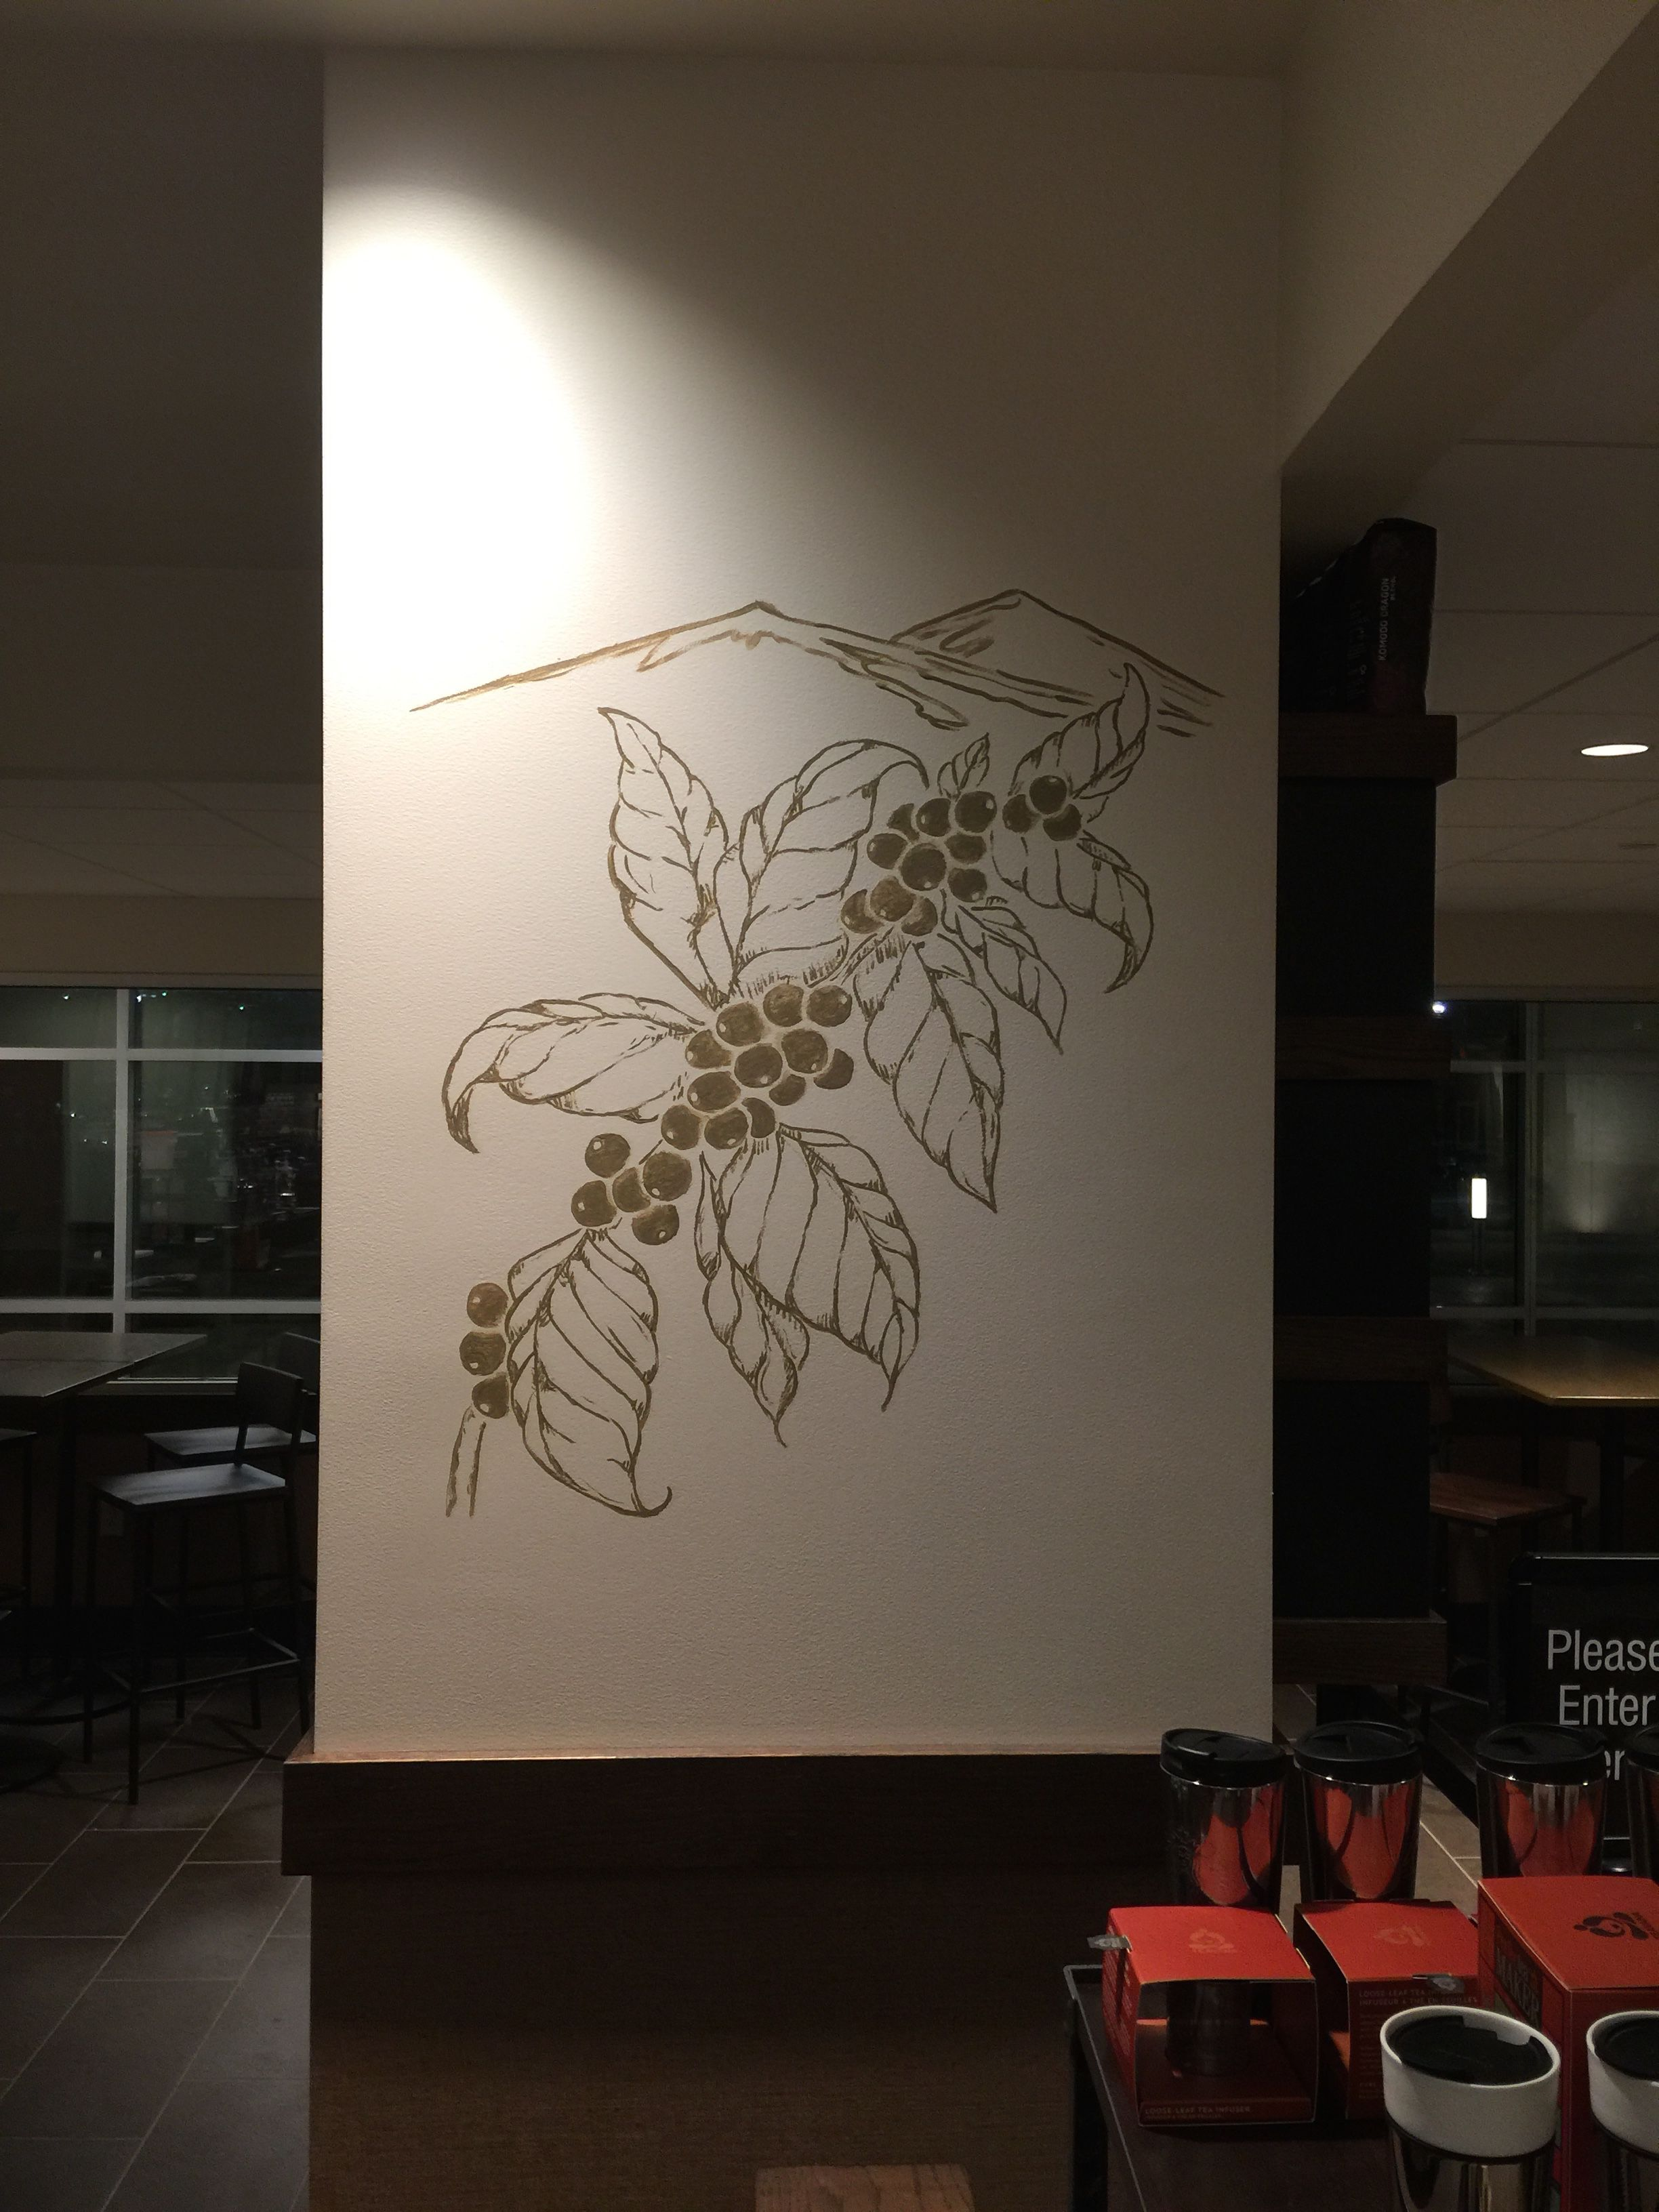 starbucks mural morgantown wv coffee beans on a branch with starbucks mural morgantown wv coffee beans on a branch with mountains in the